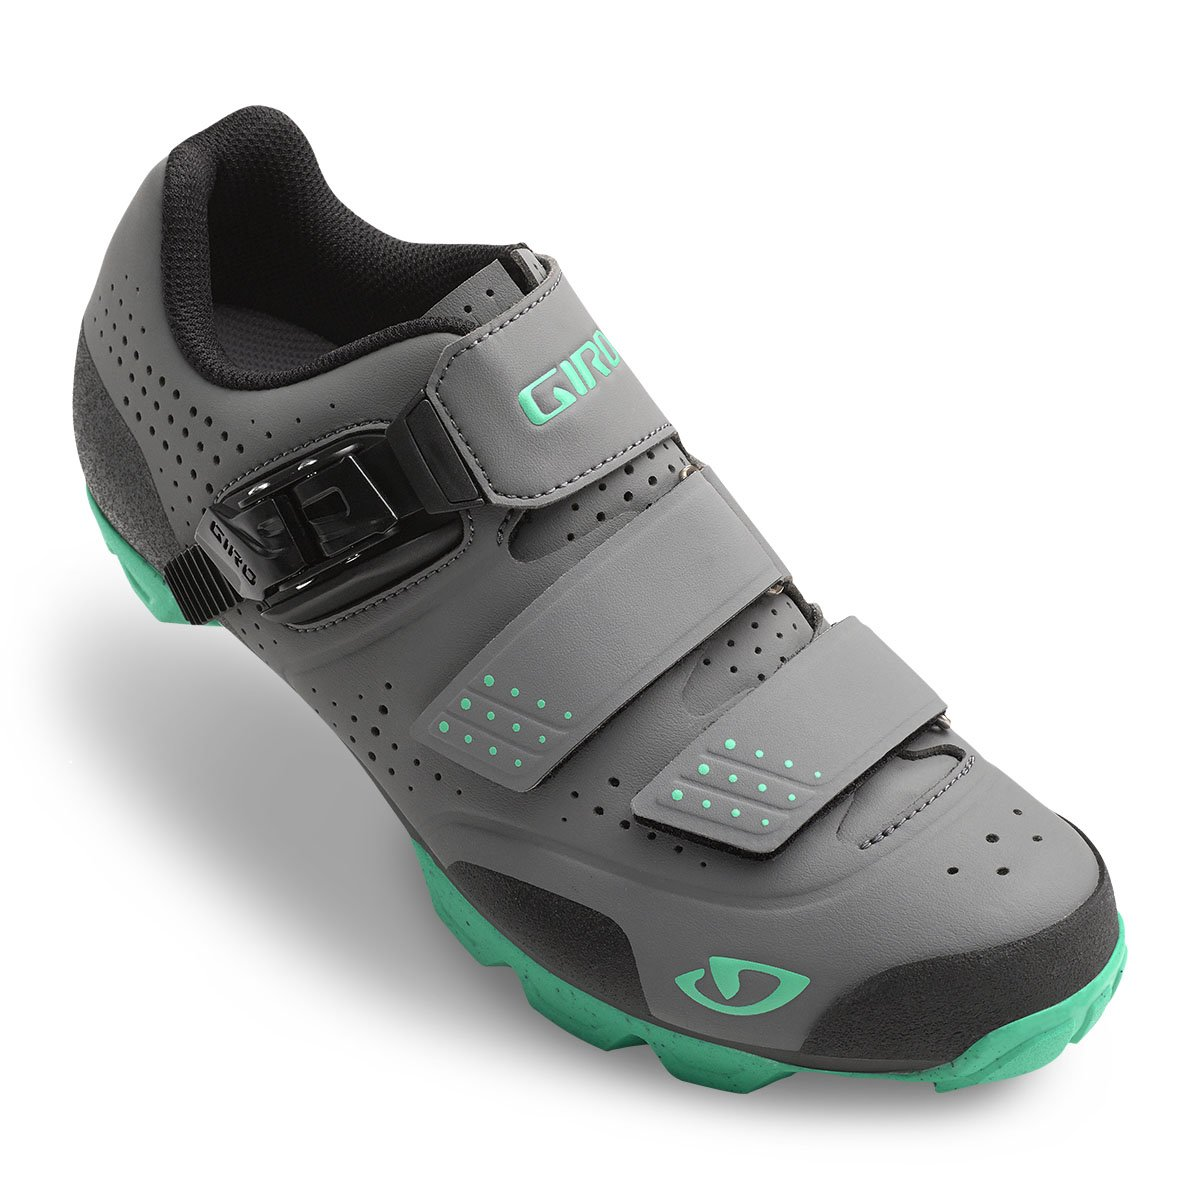 Giro Manta R Cycling Shoes - Women's B015T79ST2 40.5|Charcoal/Turquoise